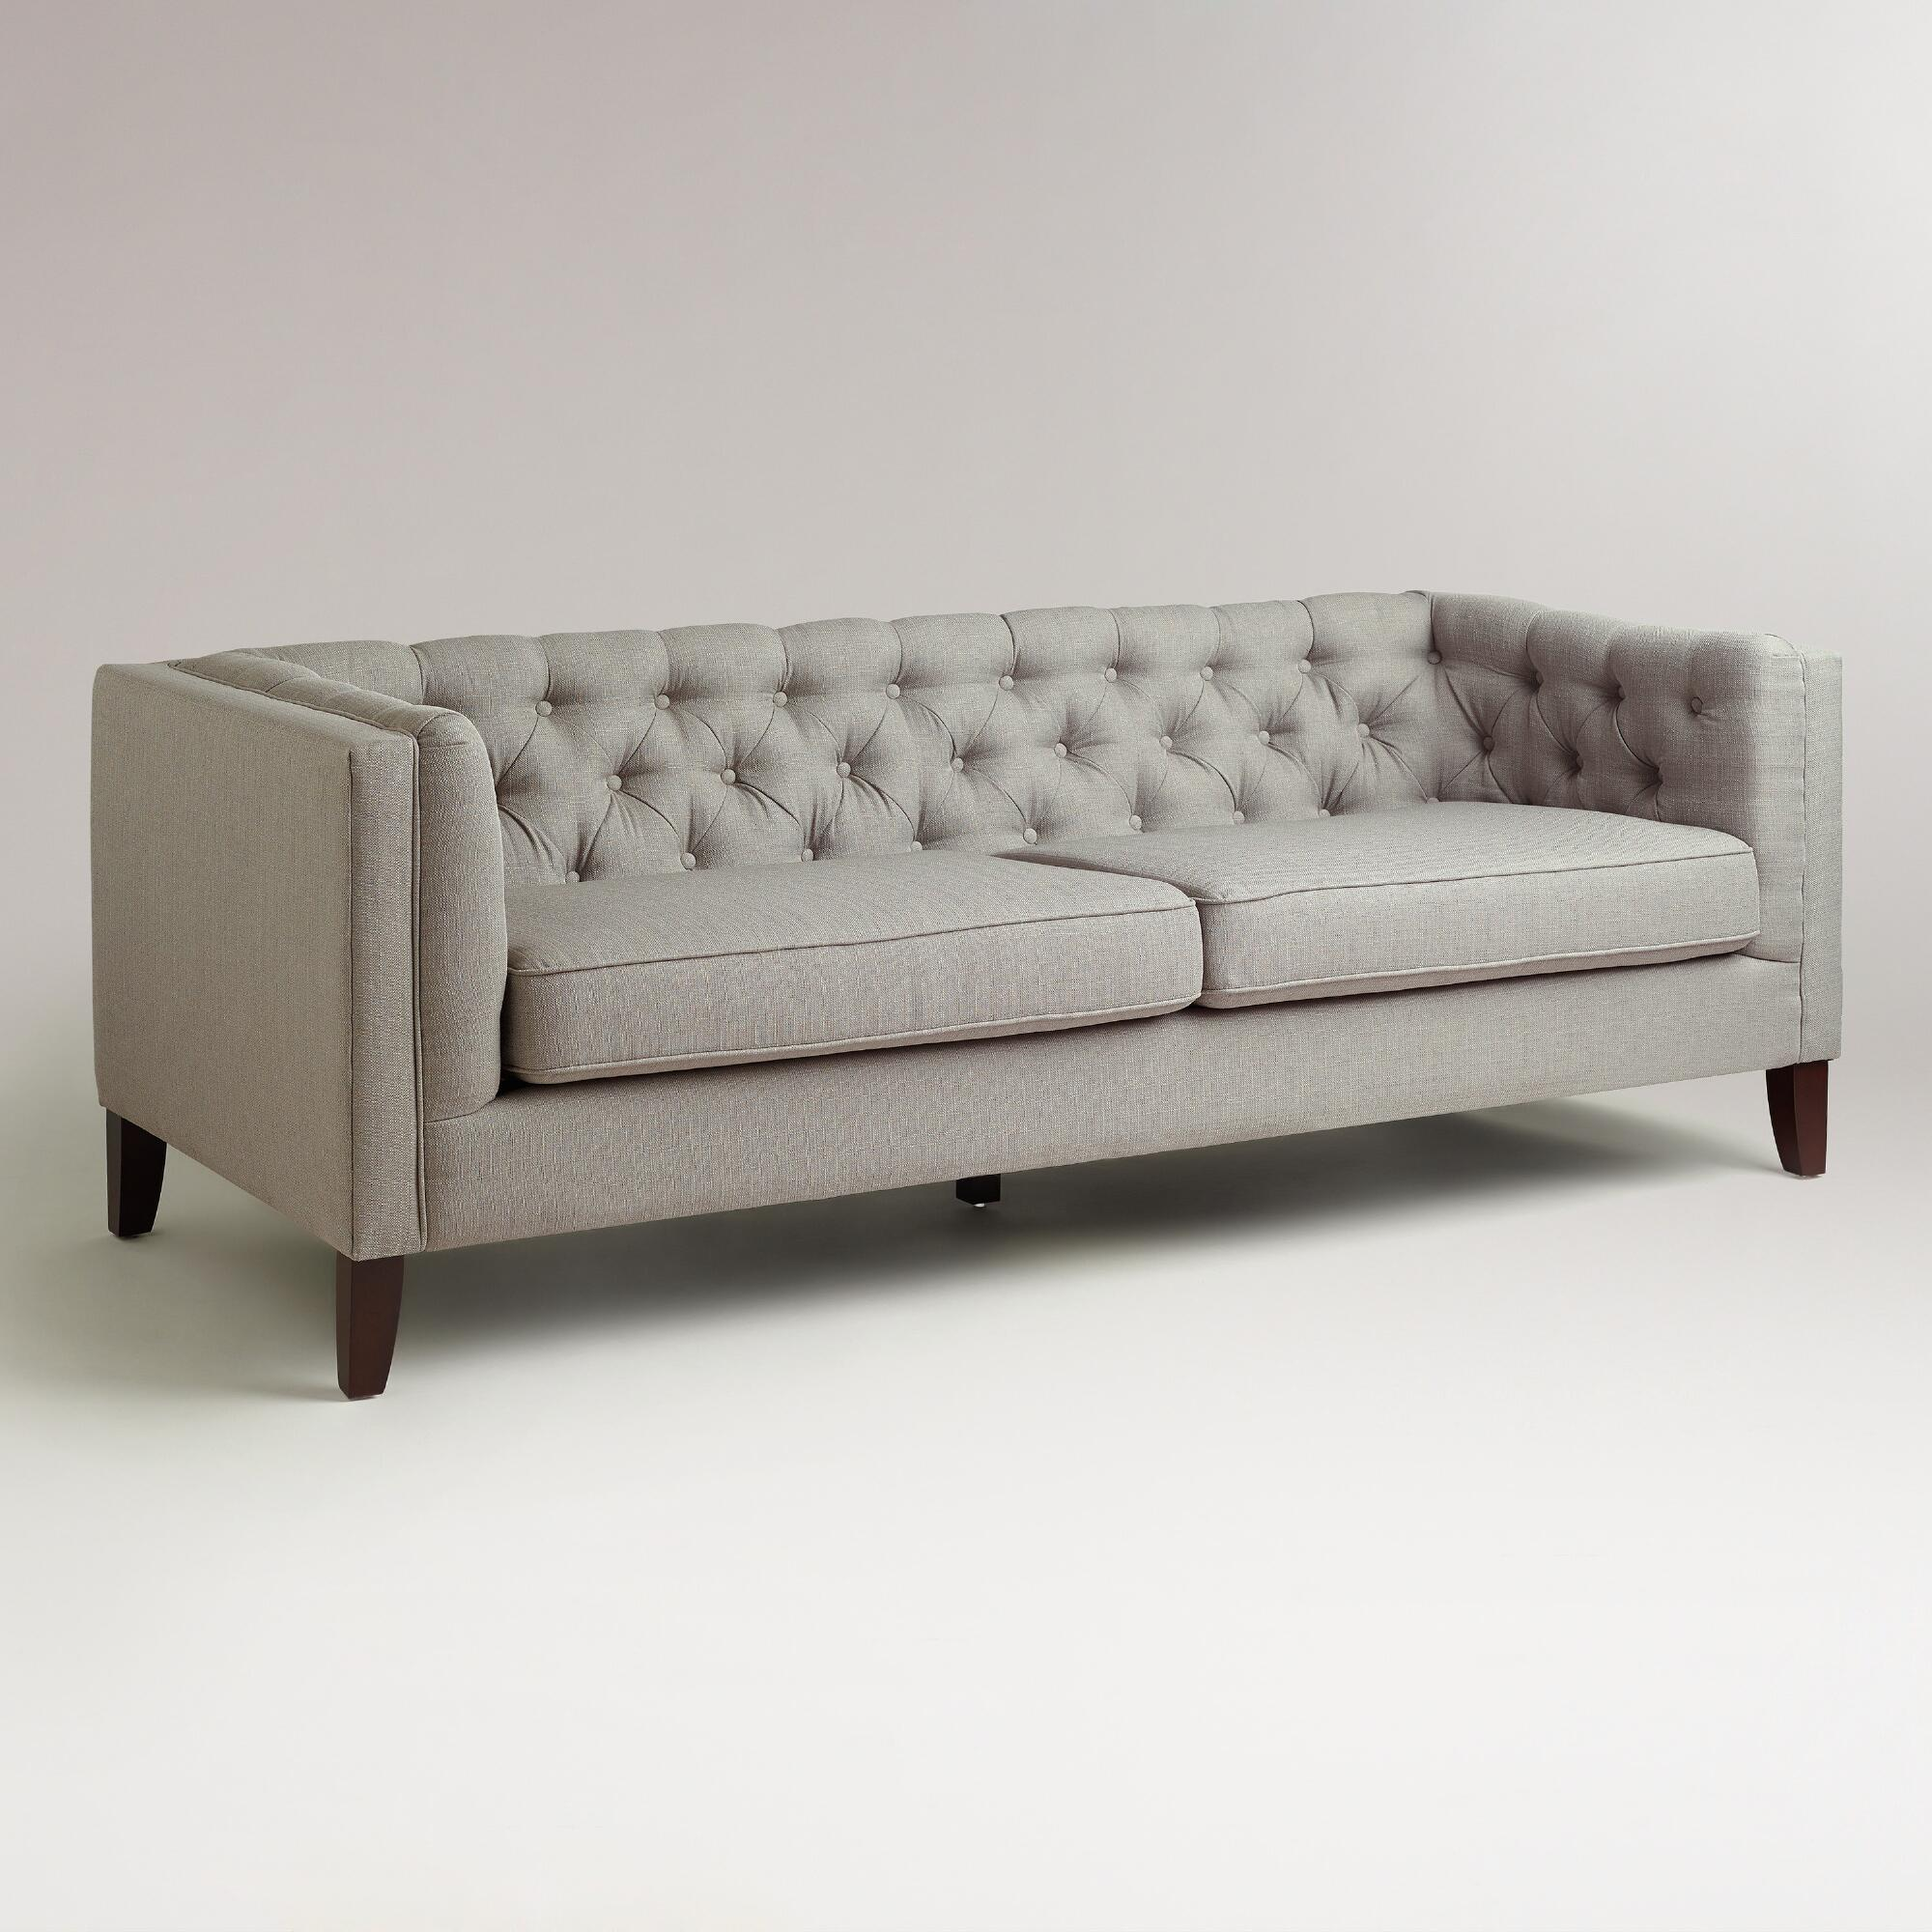 Captivating Fog Kendall Sofa